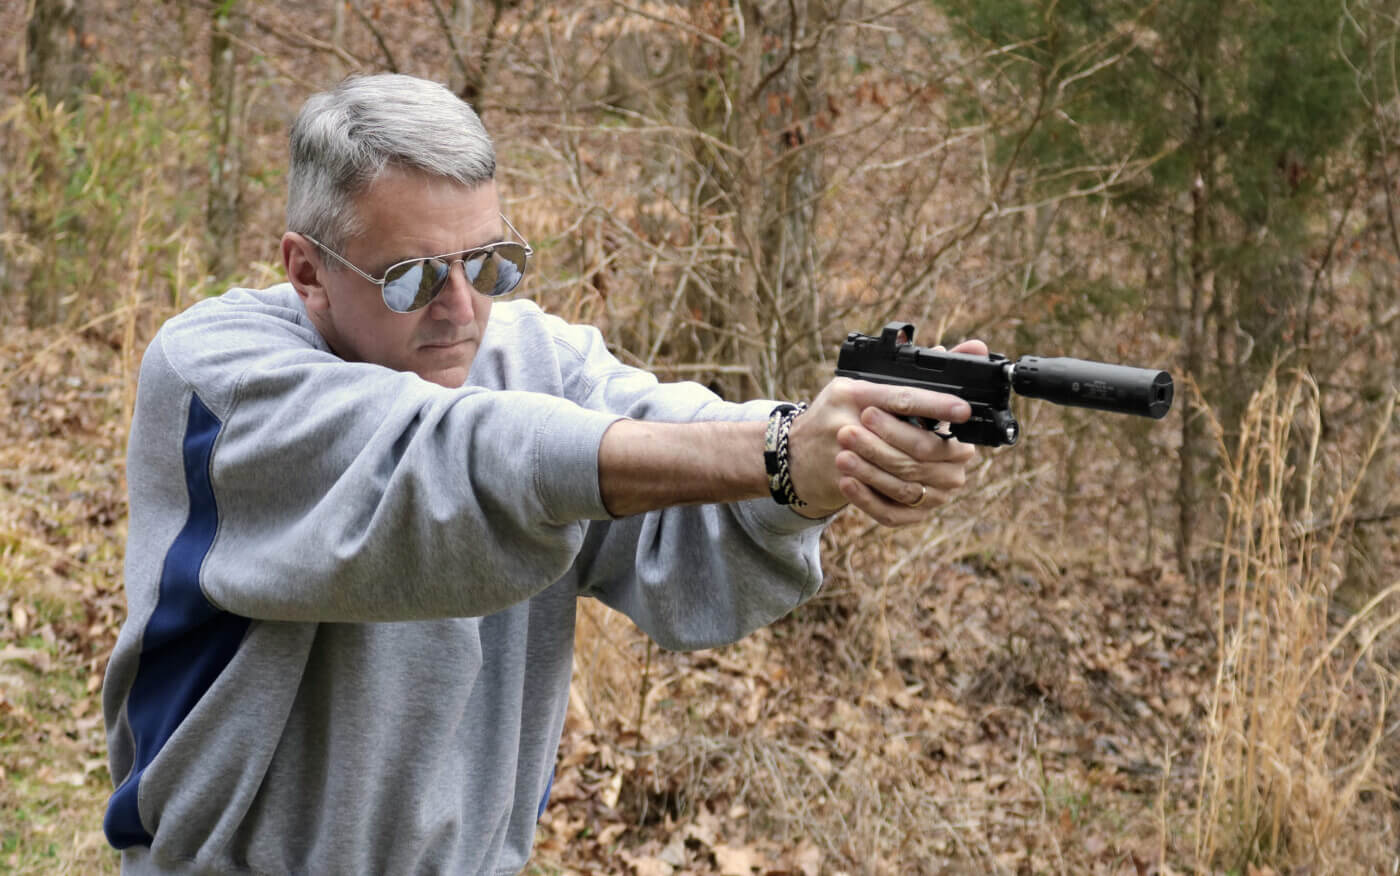 Shooting a Hellcat RDP pistol with suppressor attached